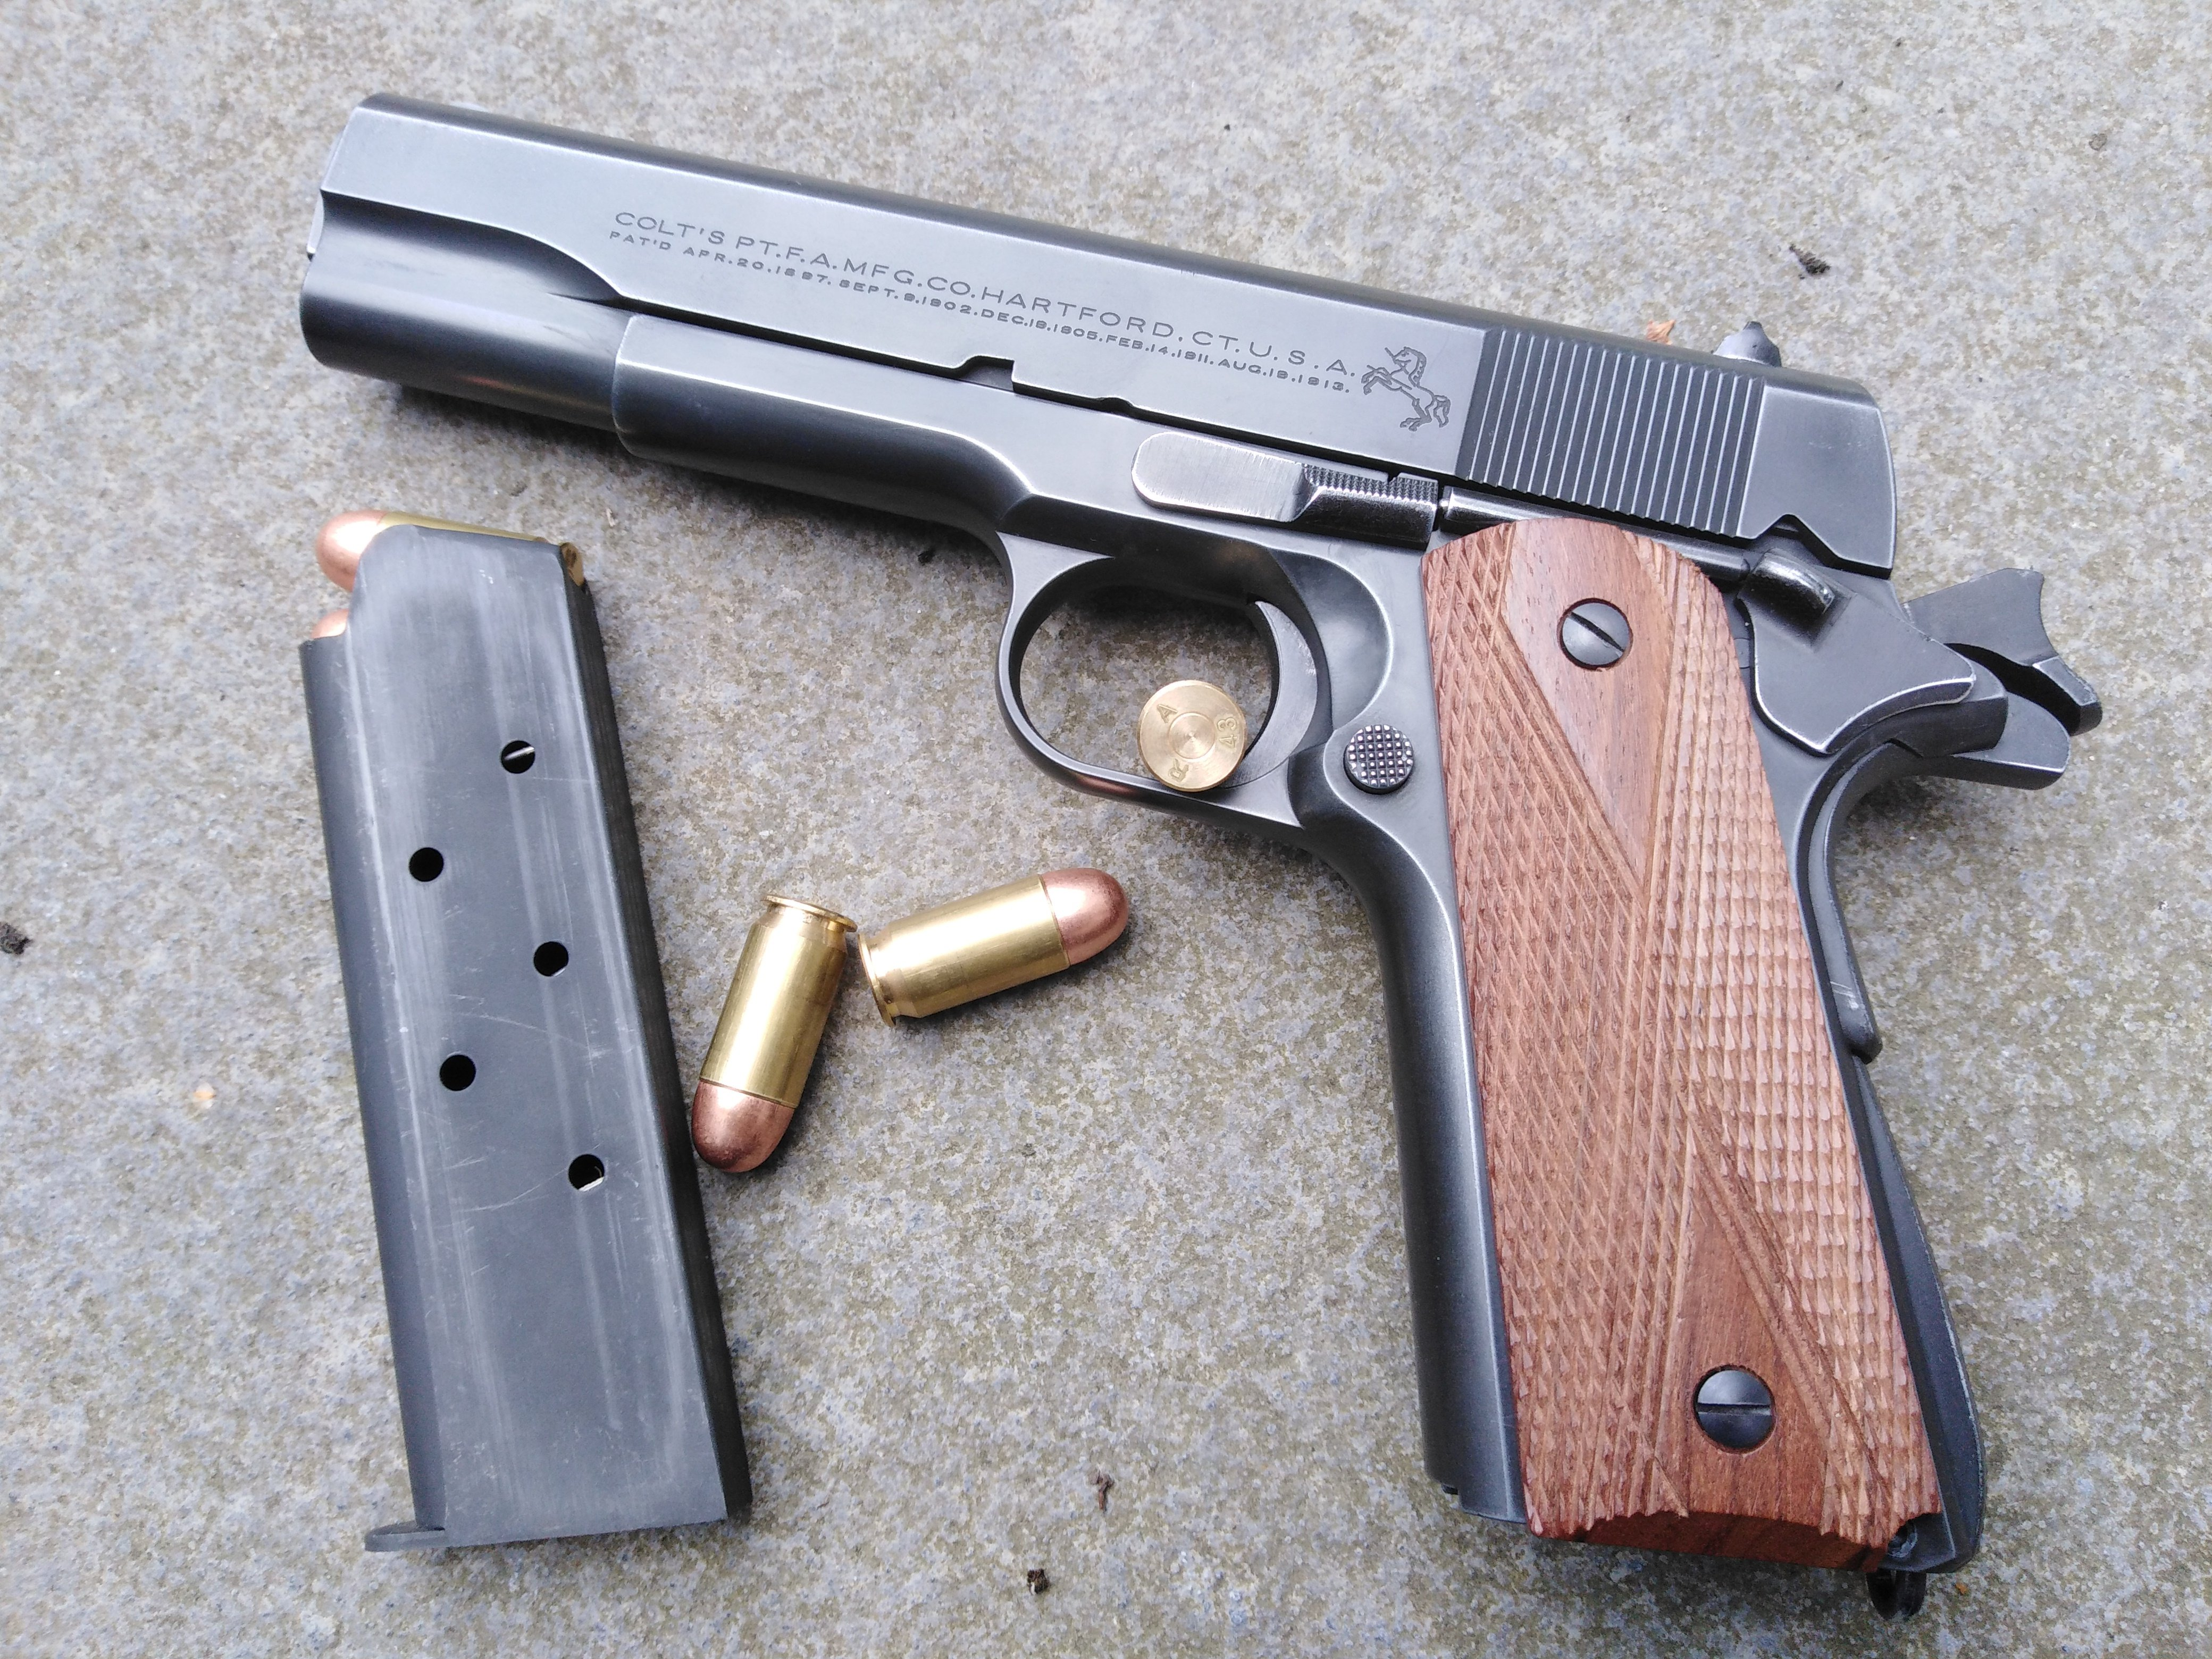 1911 EJERCITO ARGENTINO colt 45 cal model 1927